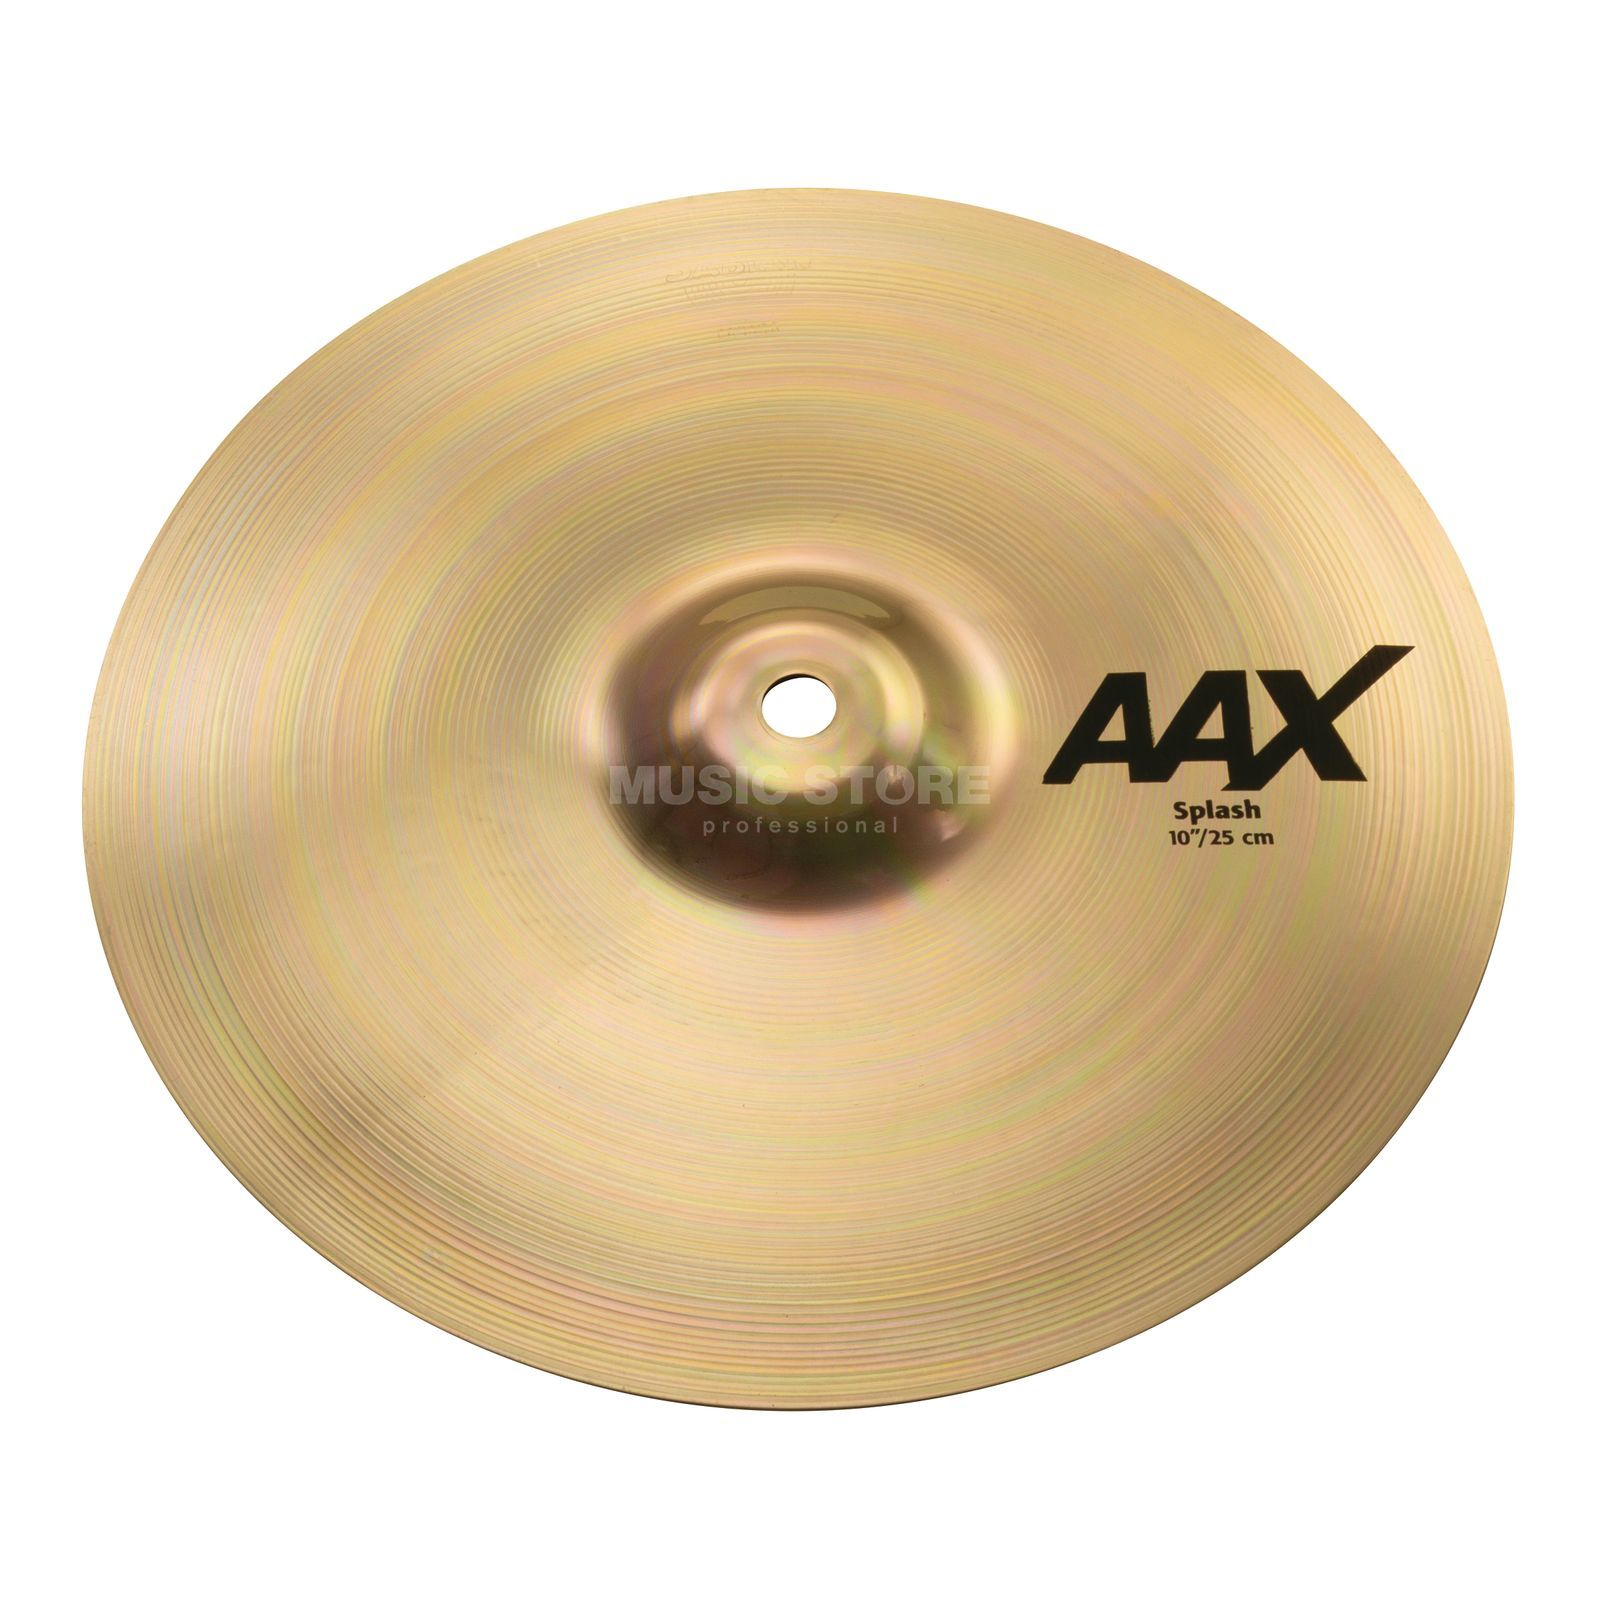 "Sabian AA Medium Thin Crash 16"" Finition brillante Image du produit"